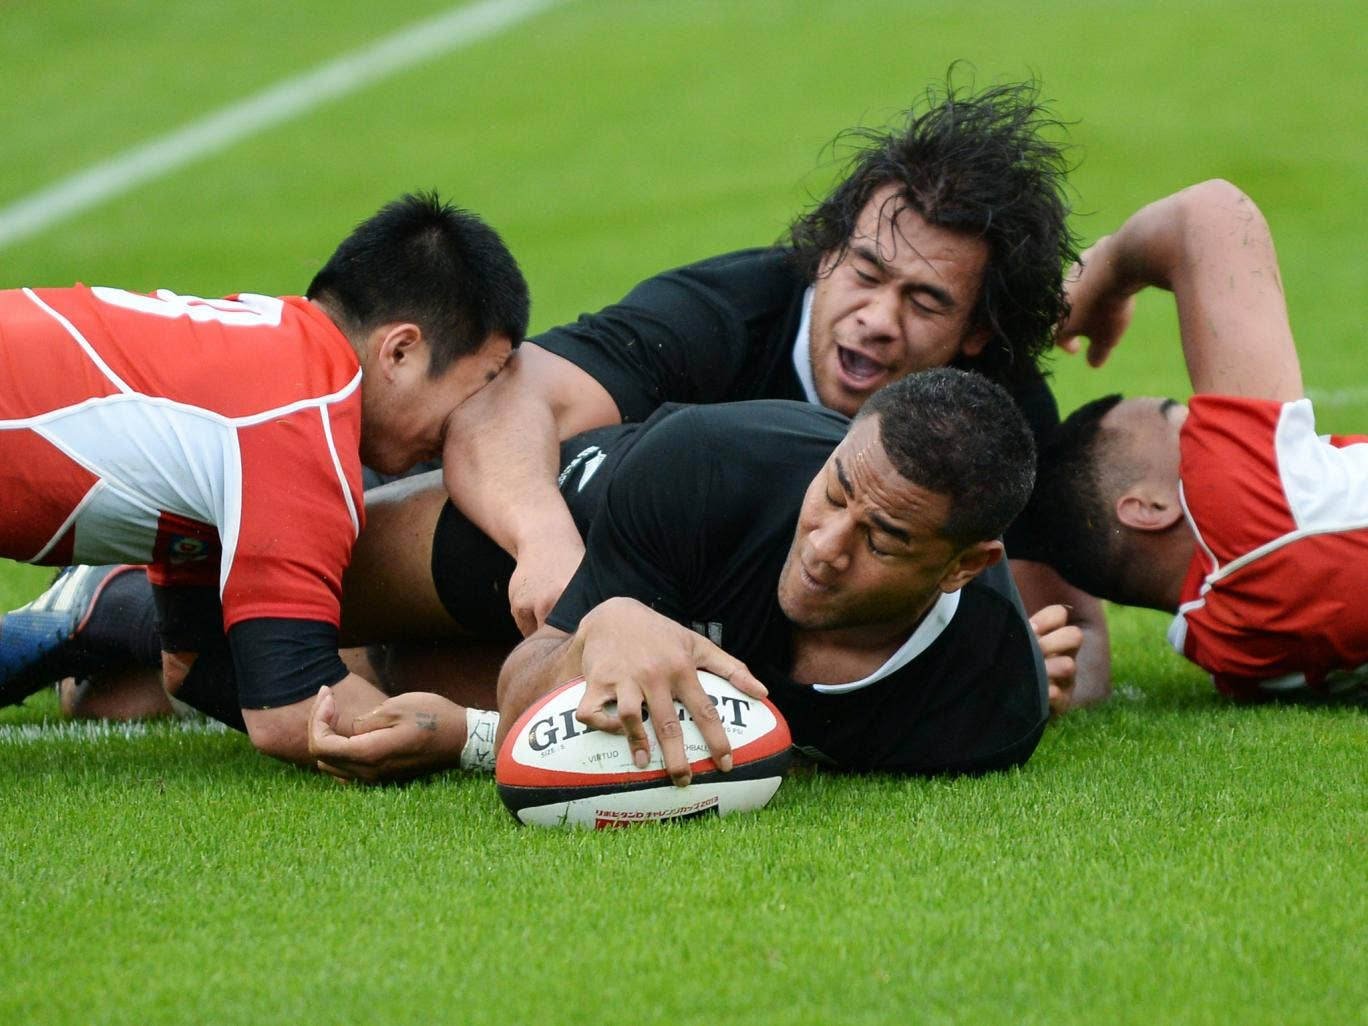 New Zealand's Frank Halai reaches out to score a try against Japan